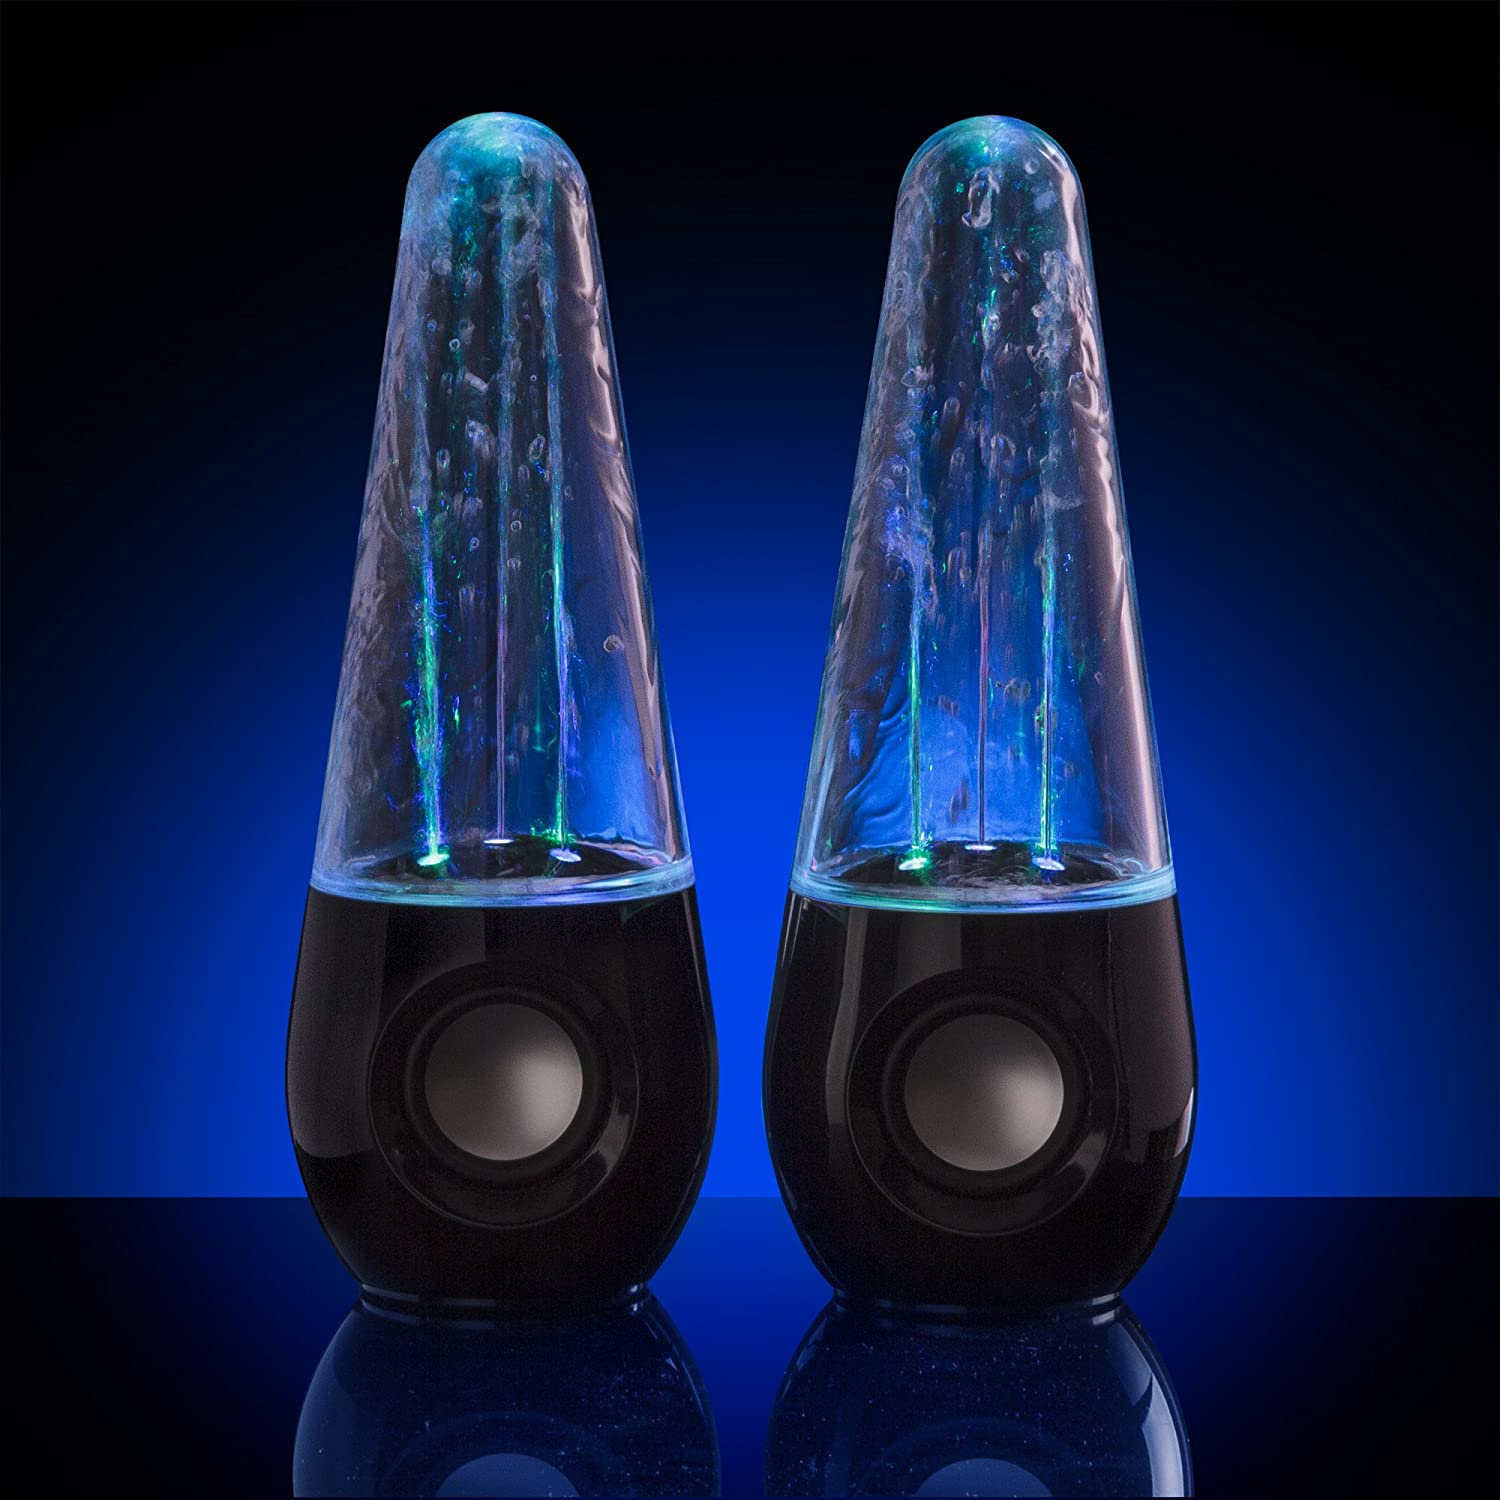 Tobar 28363 DANCING WATER SPEAKERS